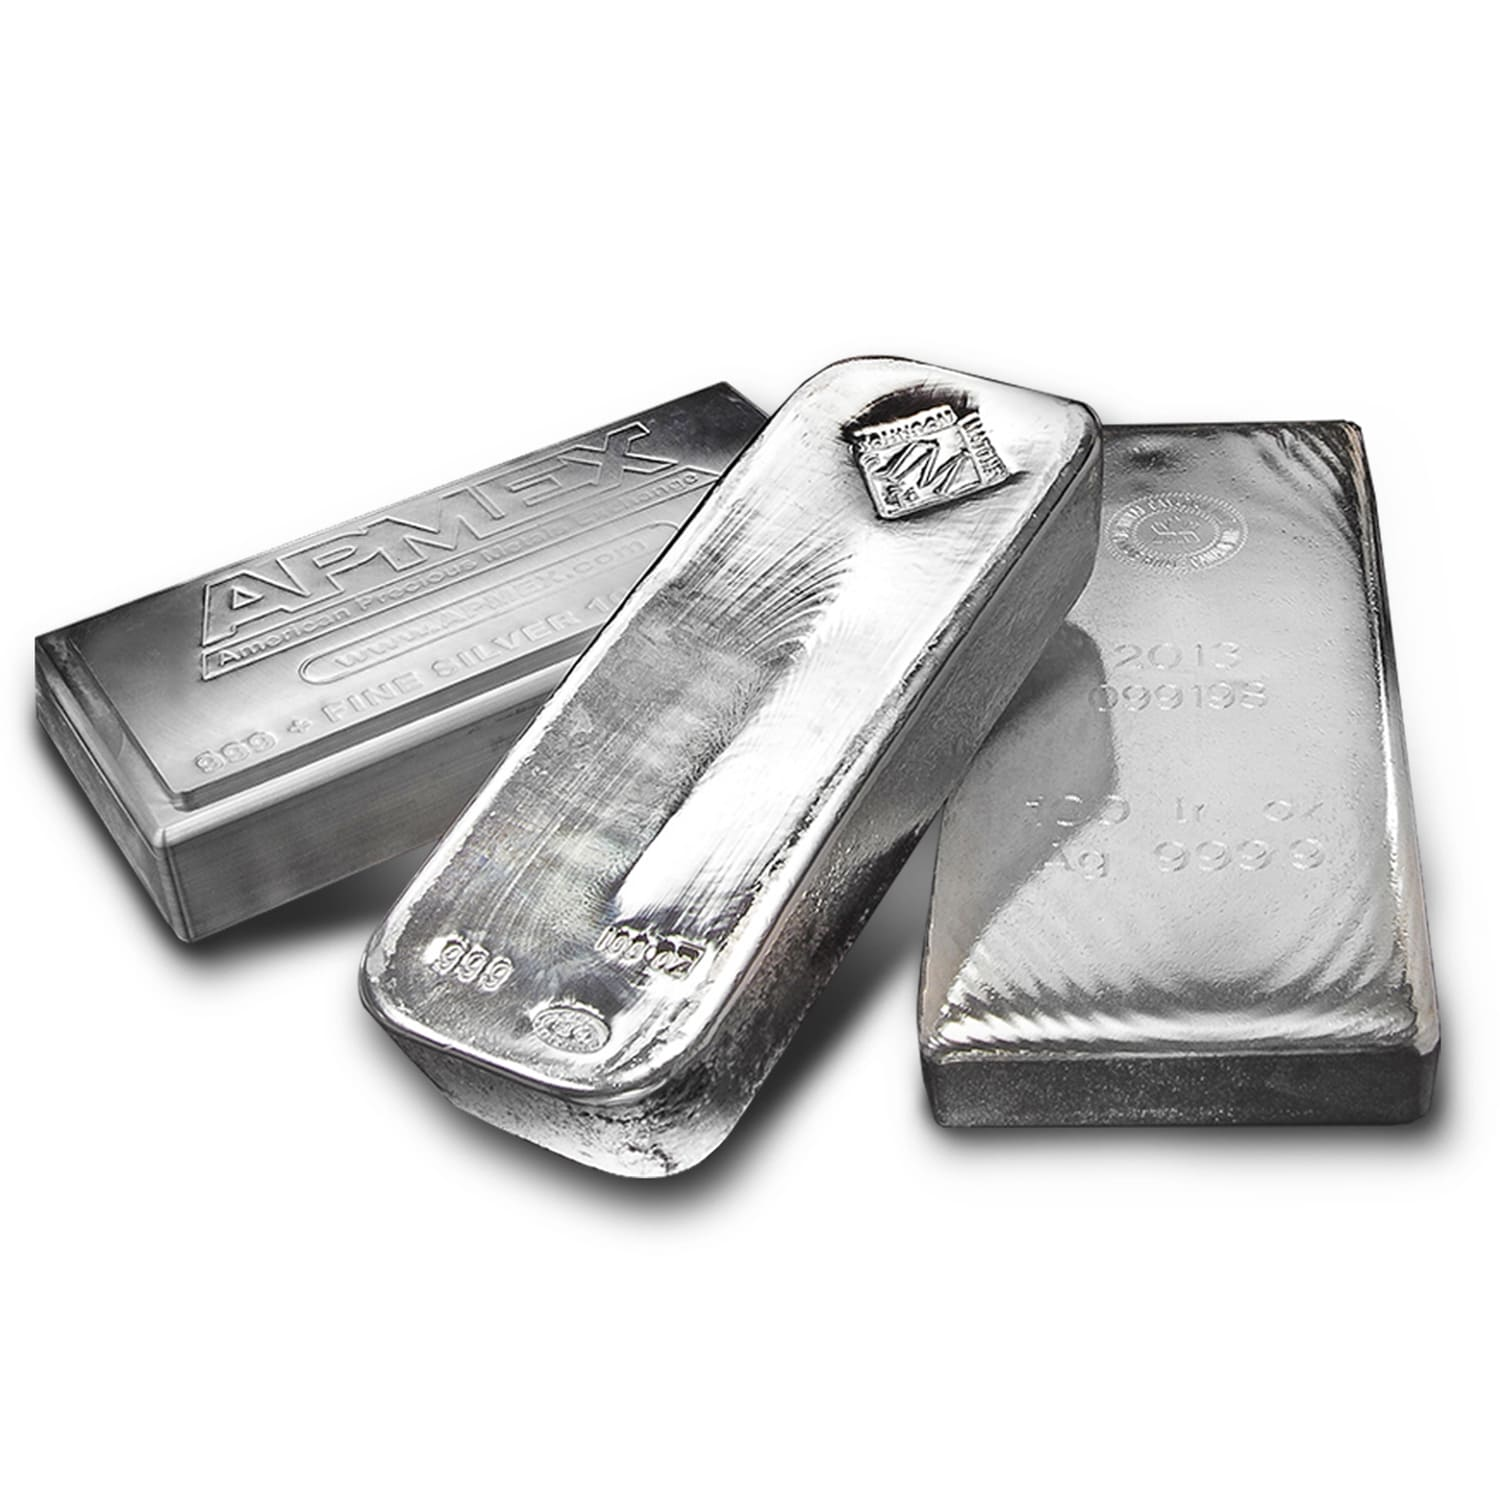 103.80 oz Silver Bars - Secondary Market